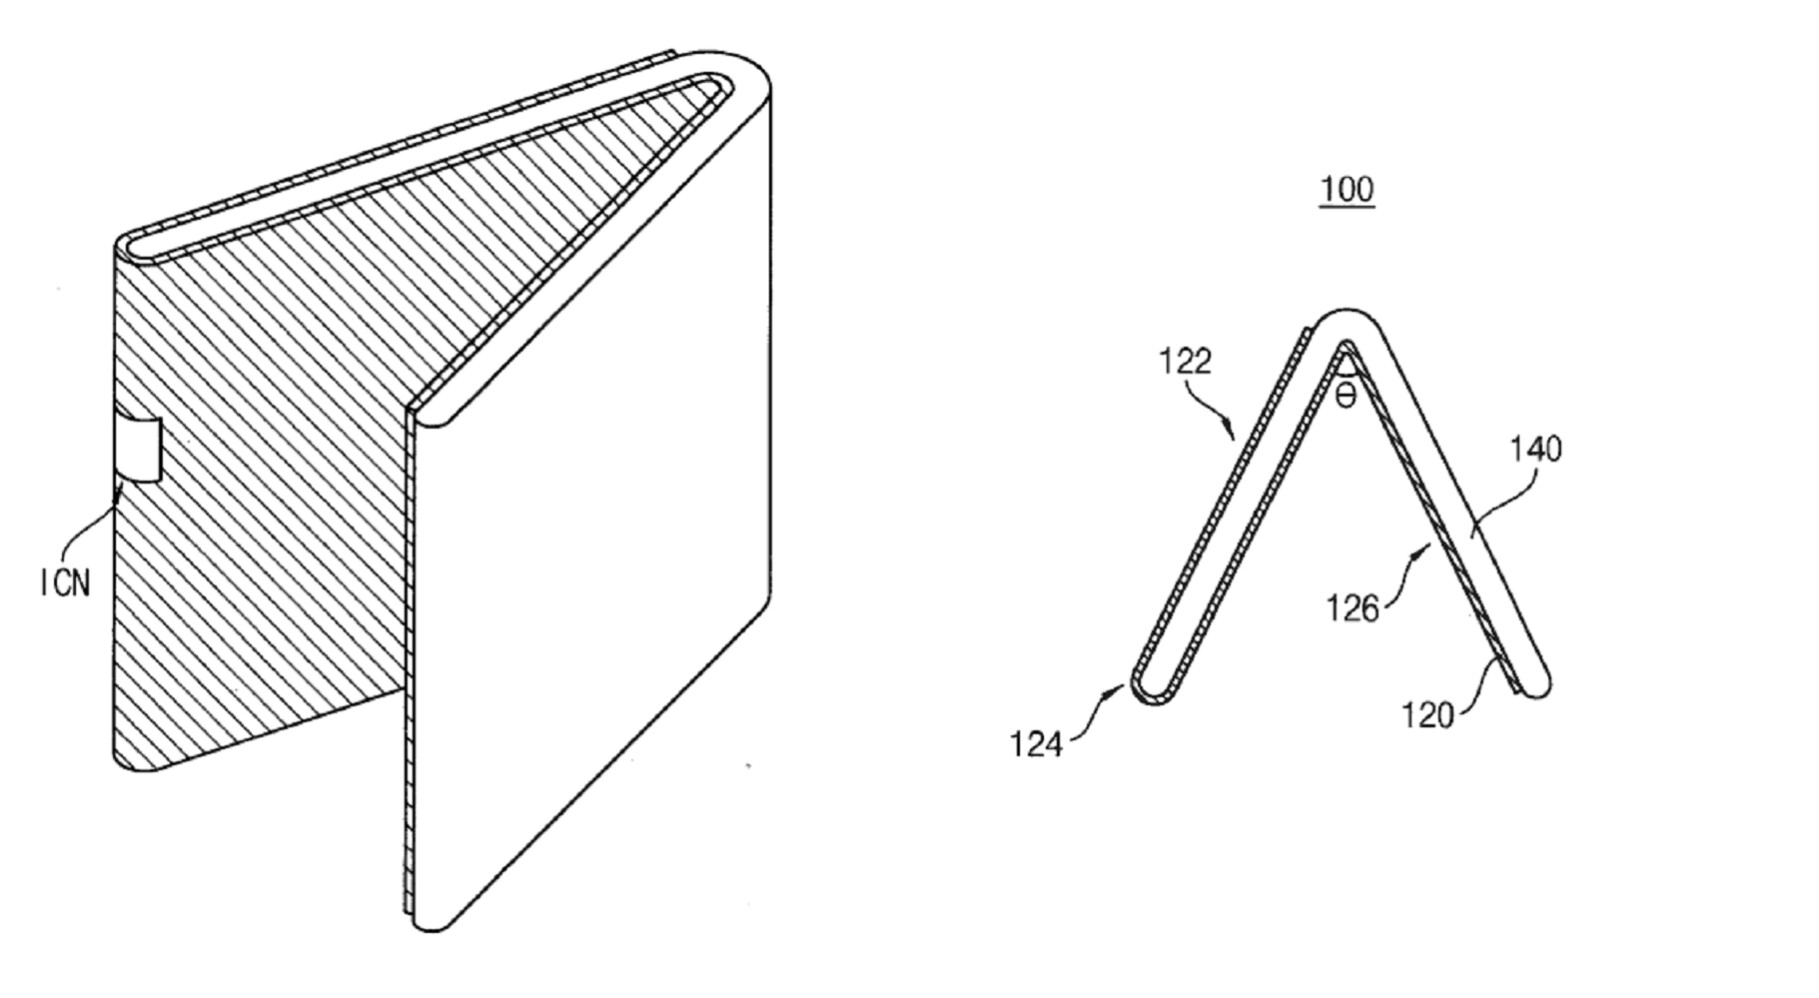 The patent shows a foldable screen that curves around the edge of the device, to the outside - New Samsung patent suggests changes to future Galaxy Z Flip models